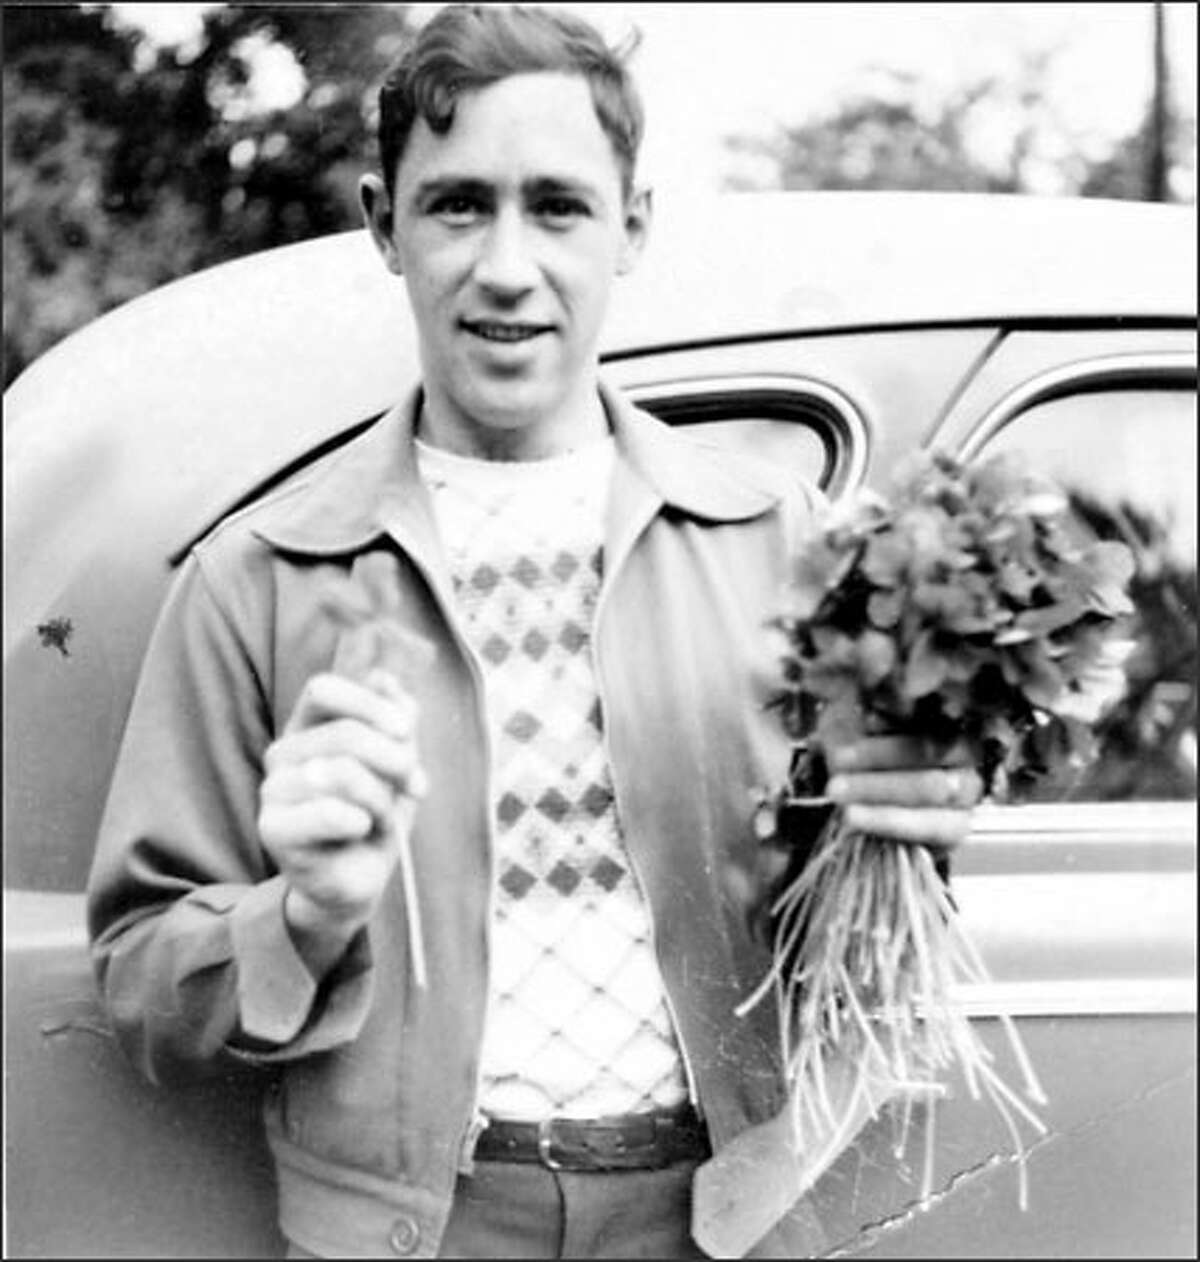 To Zumbuhl (shown here at 16 in 1939), collecting multi-leaf clovers led him to a lifelong hobby he still enjoys.